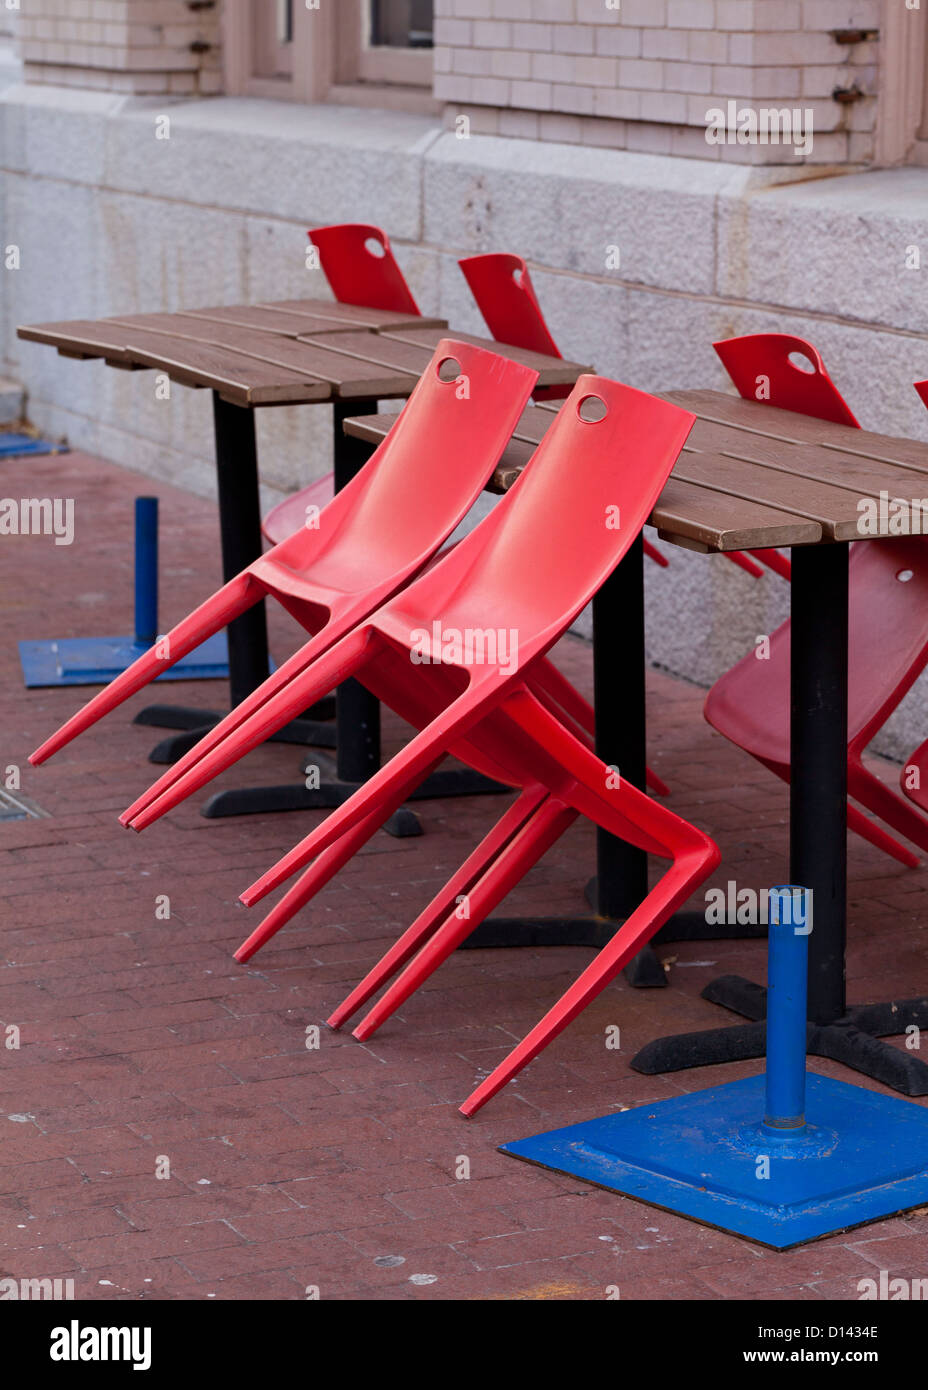 Red chairs leaning on tables - Stock Image